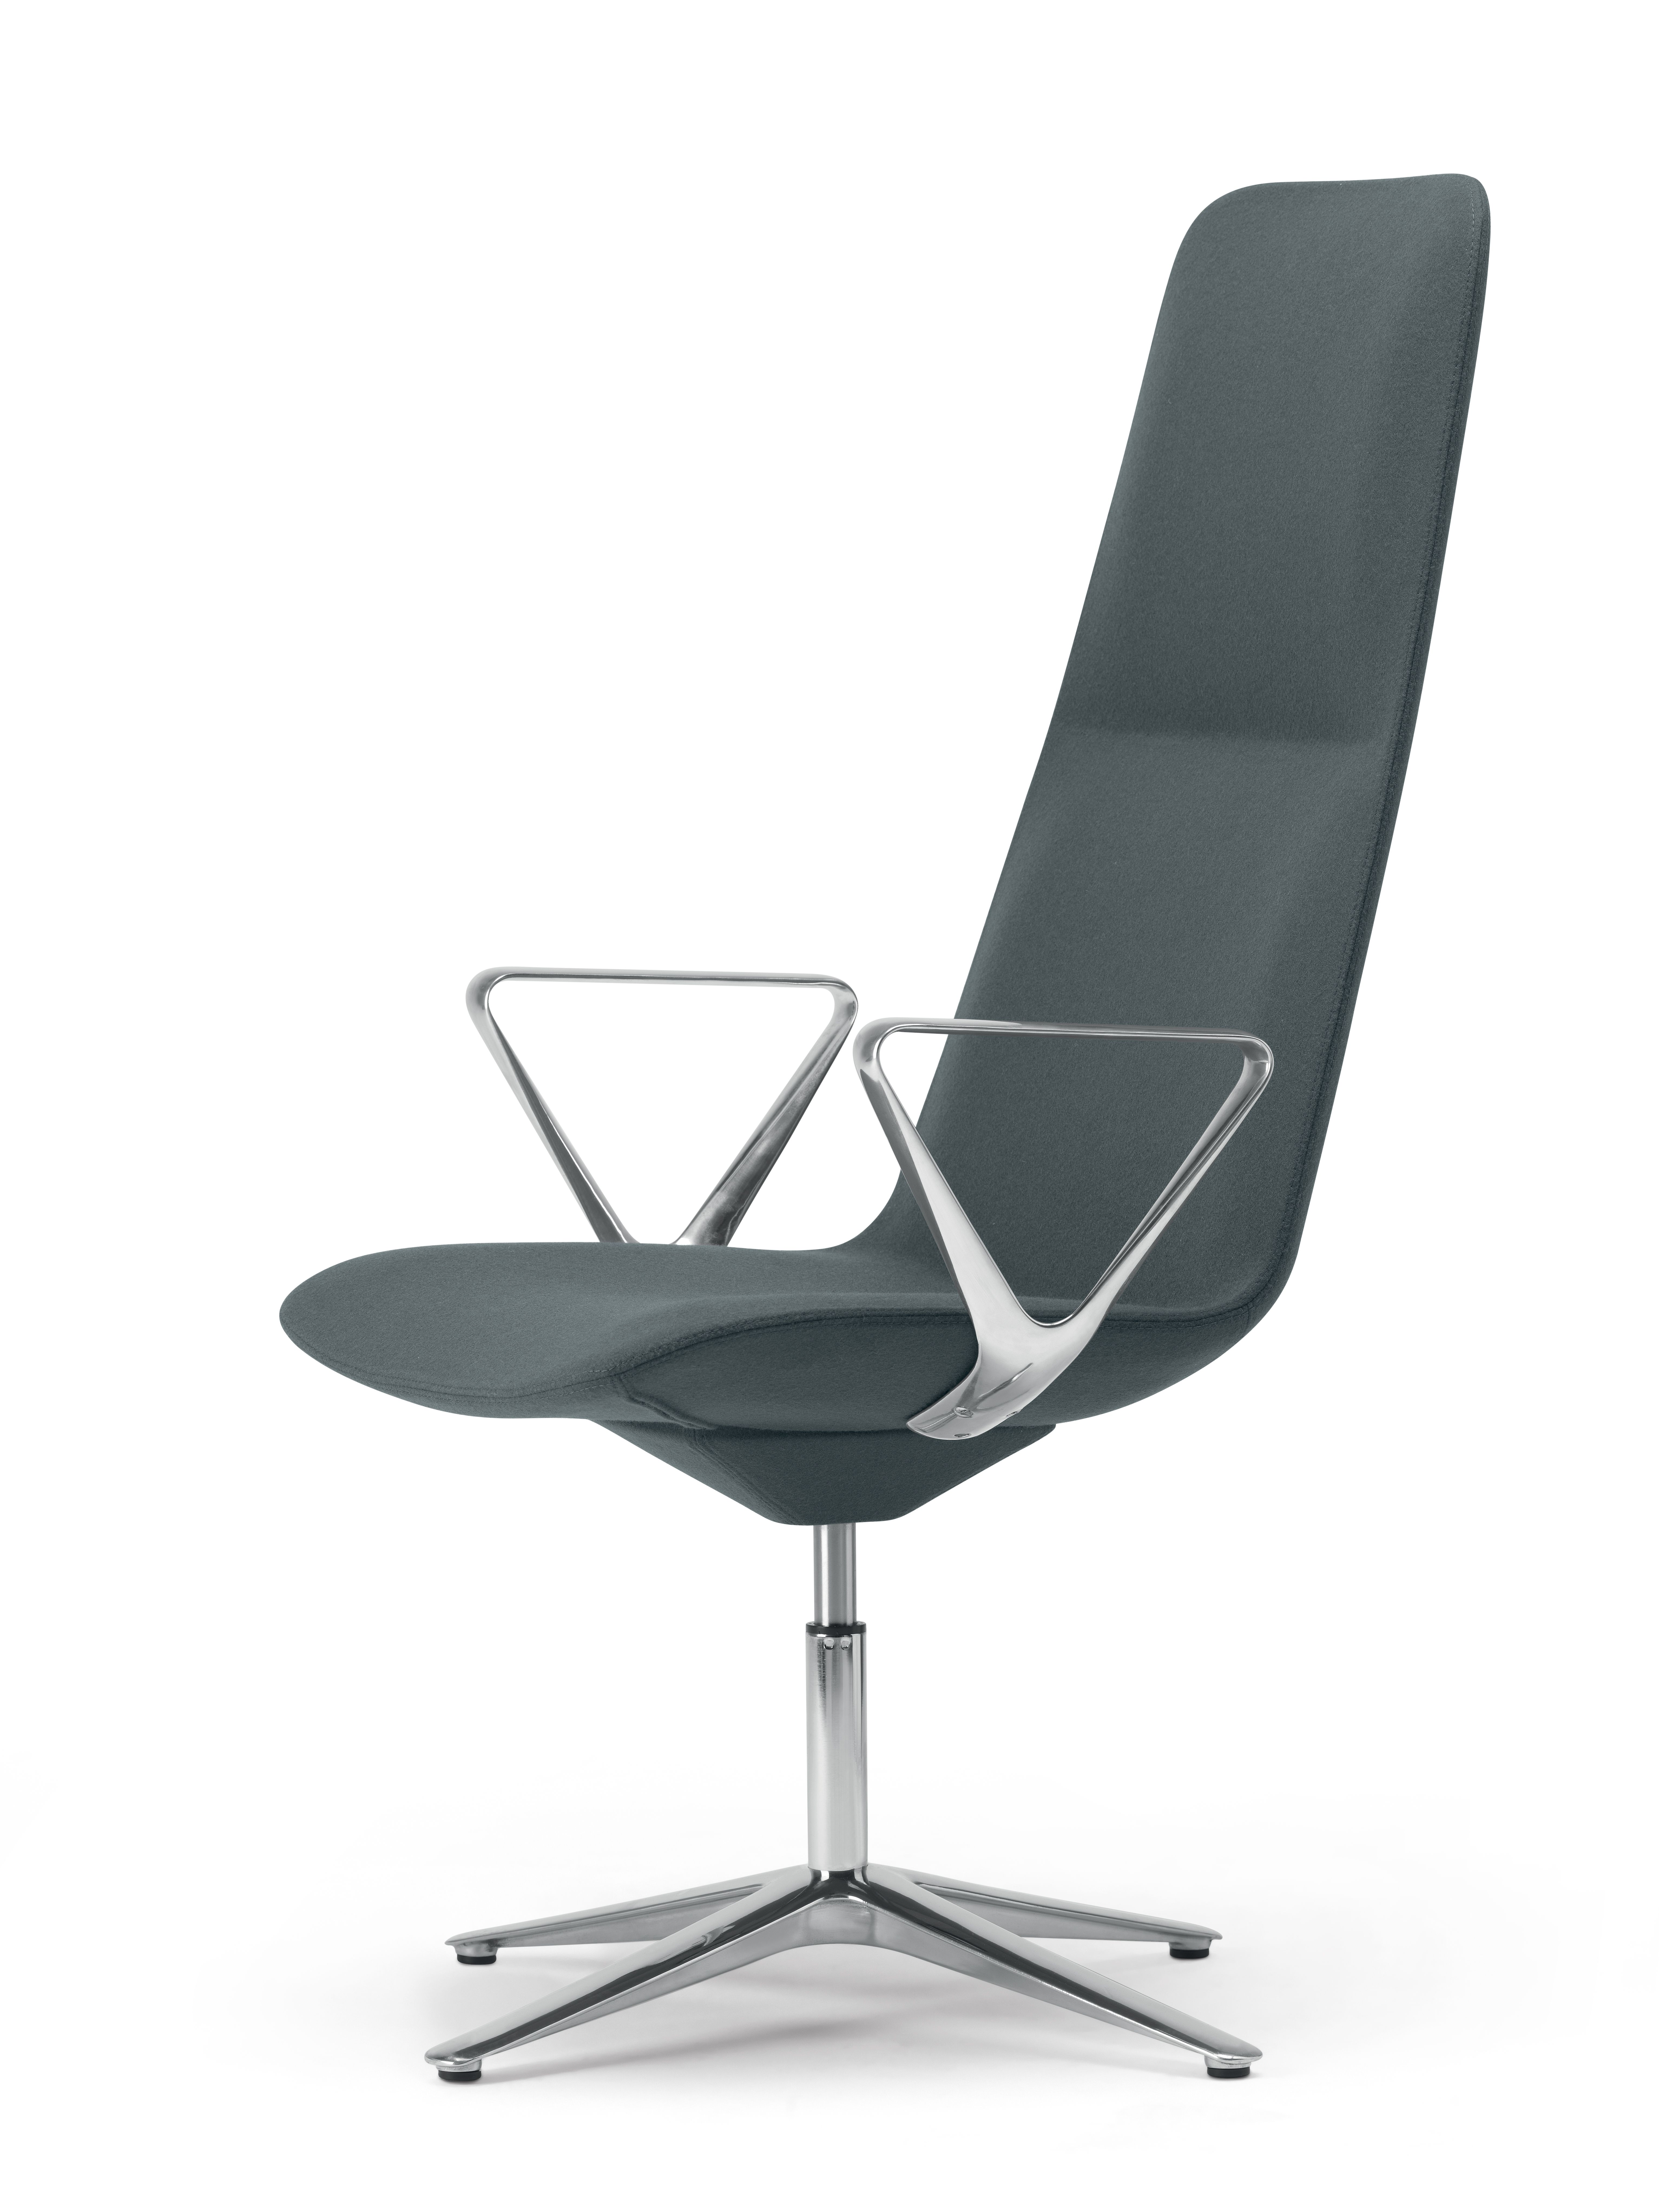 Slim Designed By Pearsonlloyd For Alias Office Seating Office